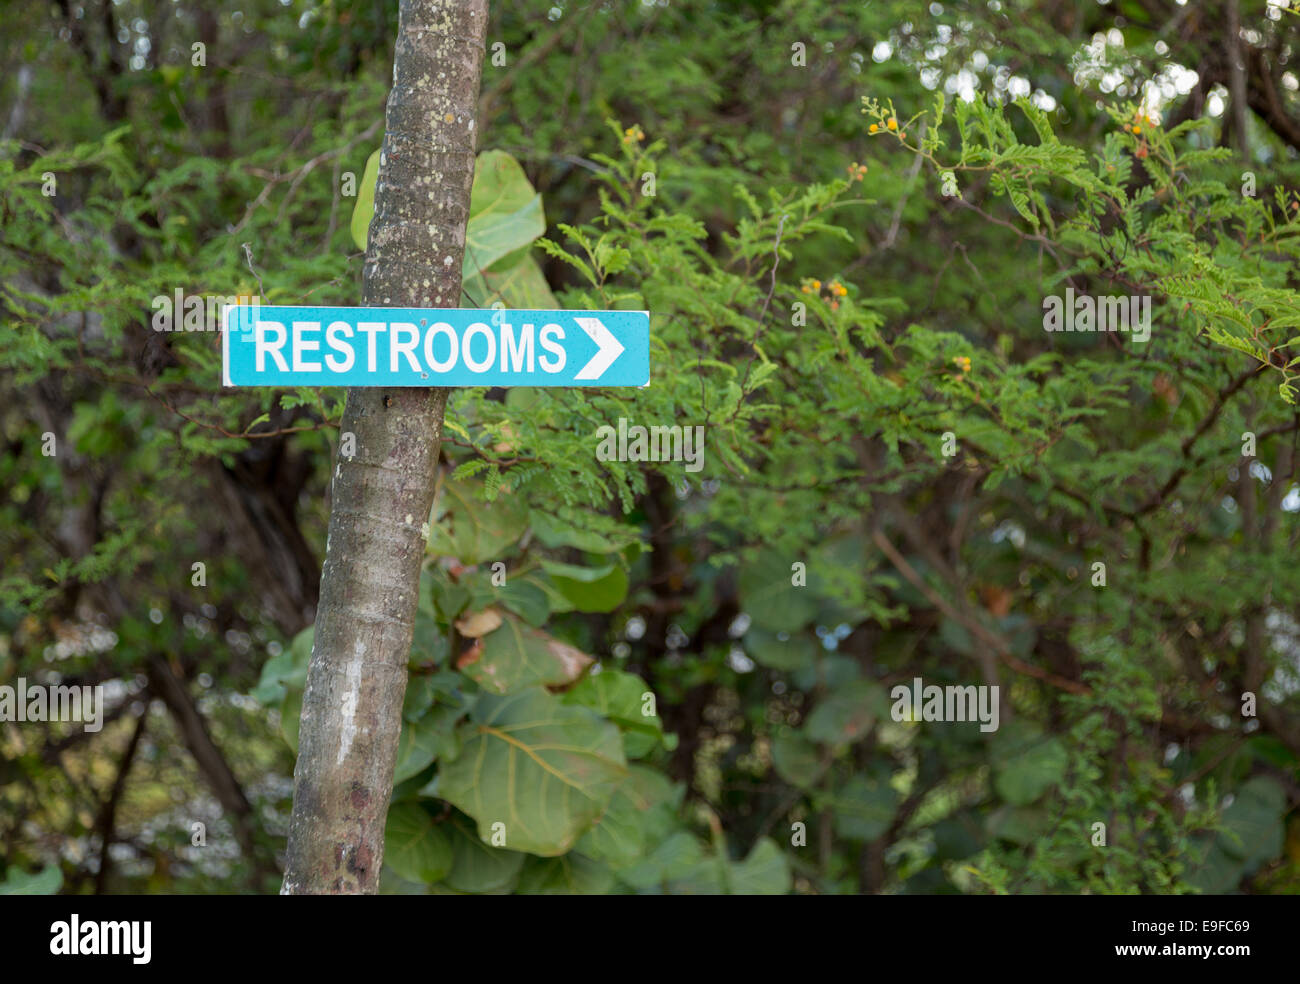 Sign pointing to restrooms - Stock Image